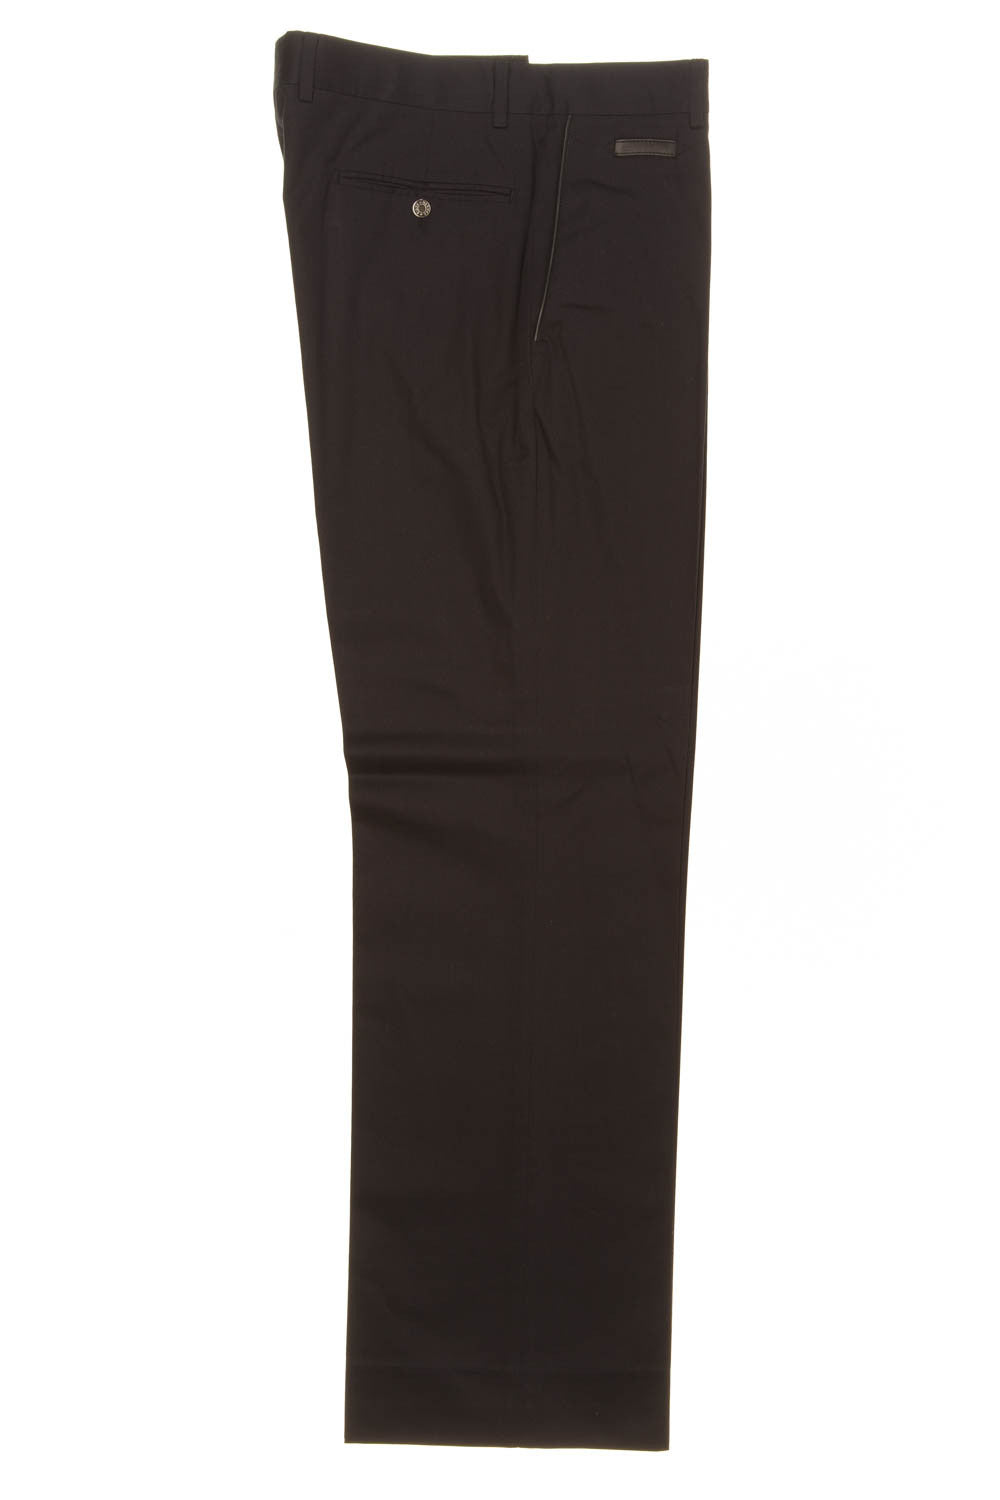 Hermes - Navy Dress Pants - IT 44